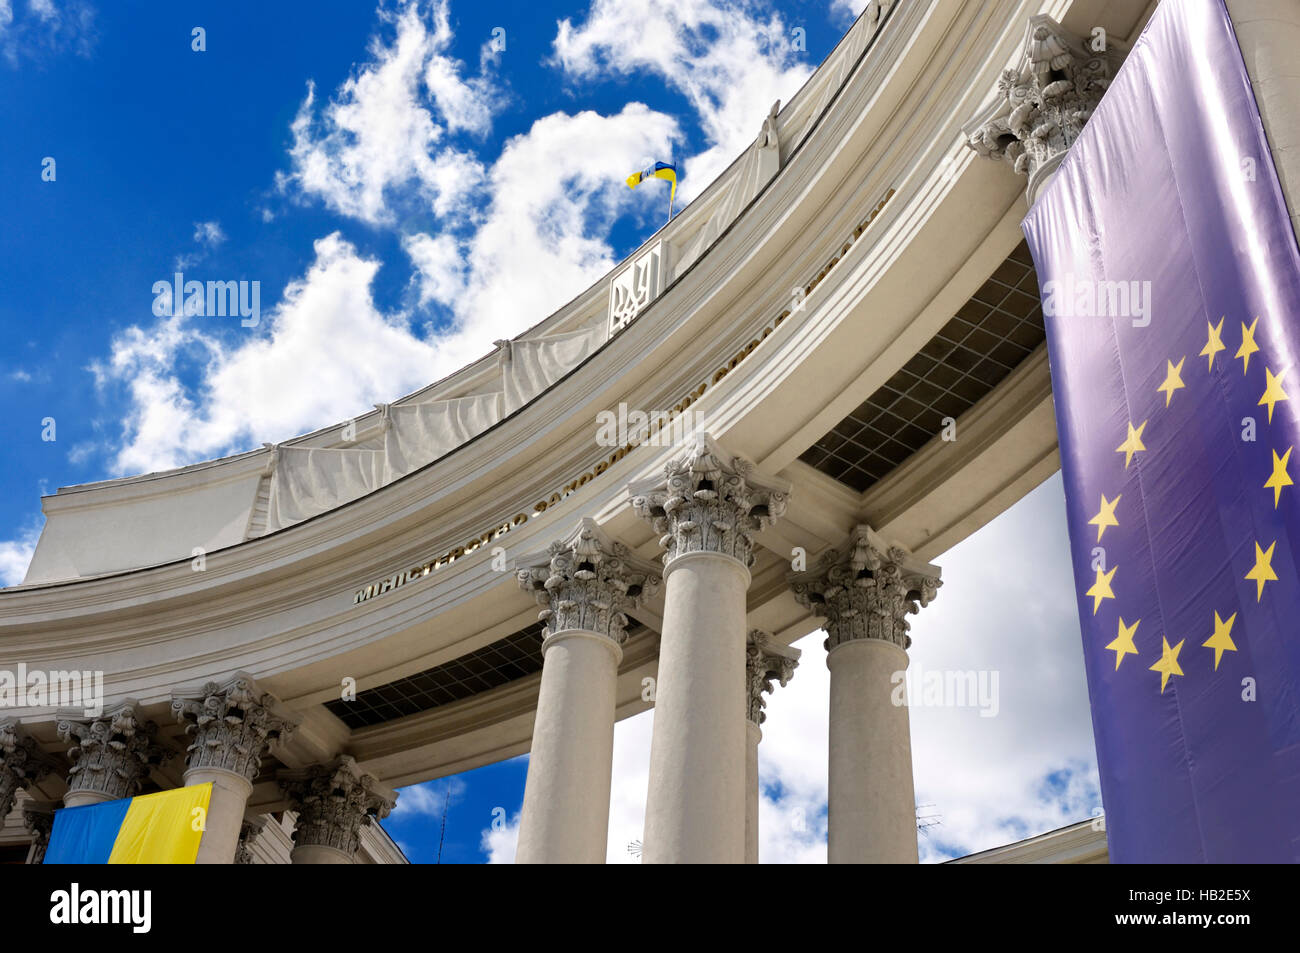 Building of the Ministry of Foreign Affairs of Ukraine with Ukrainian and European Union flags - Stock Image